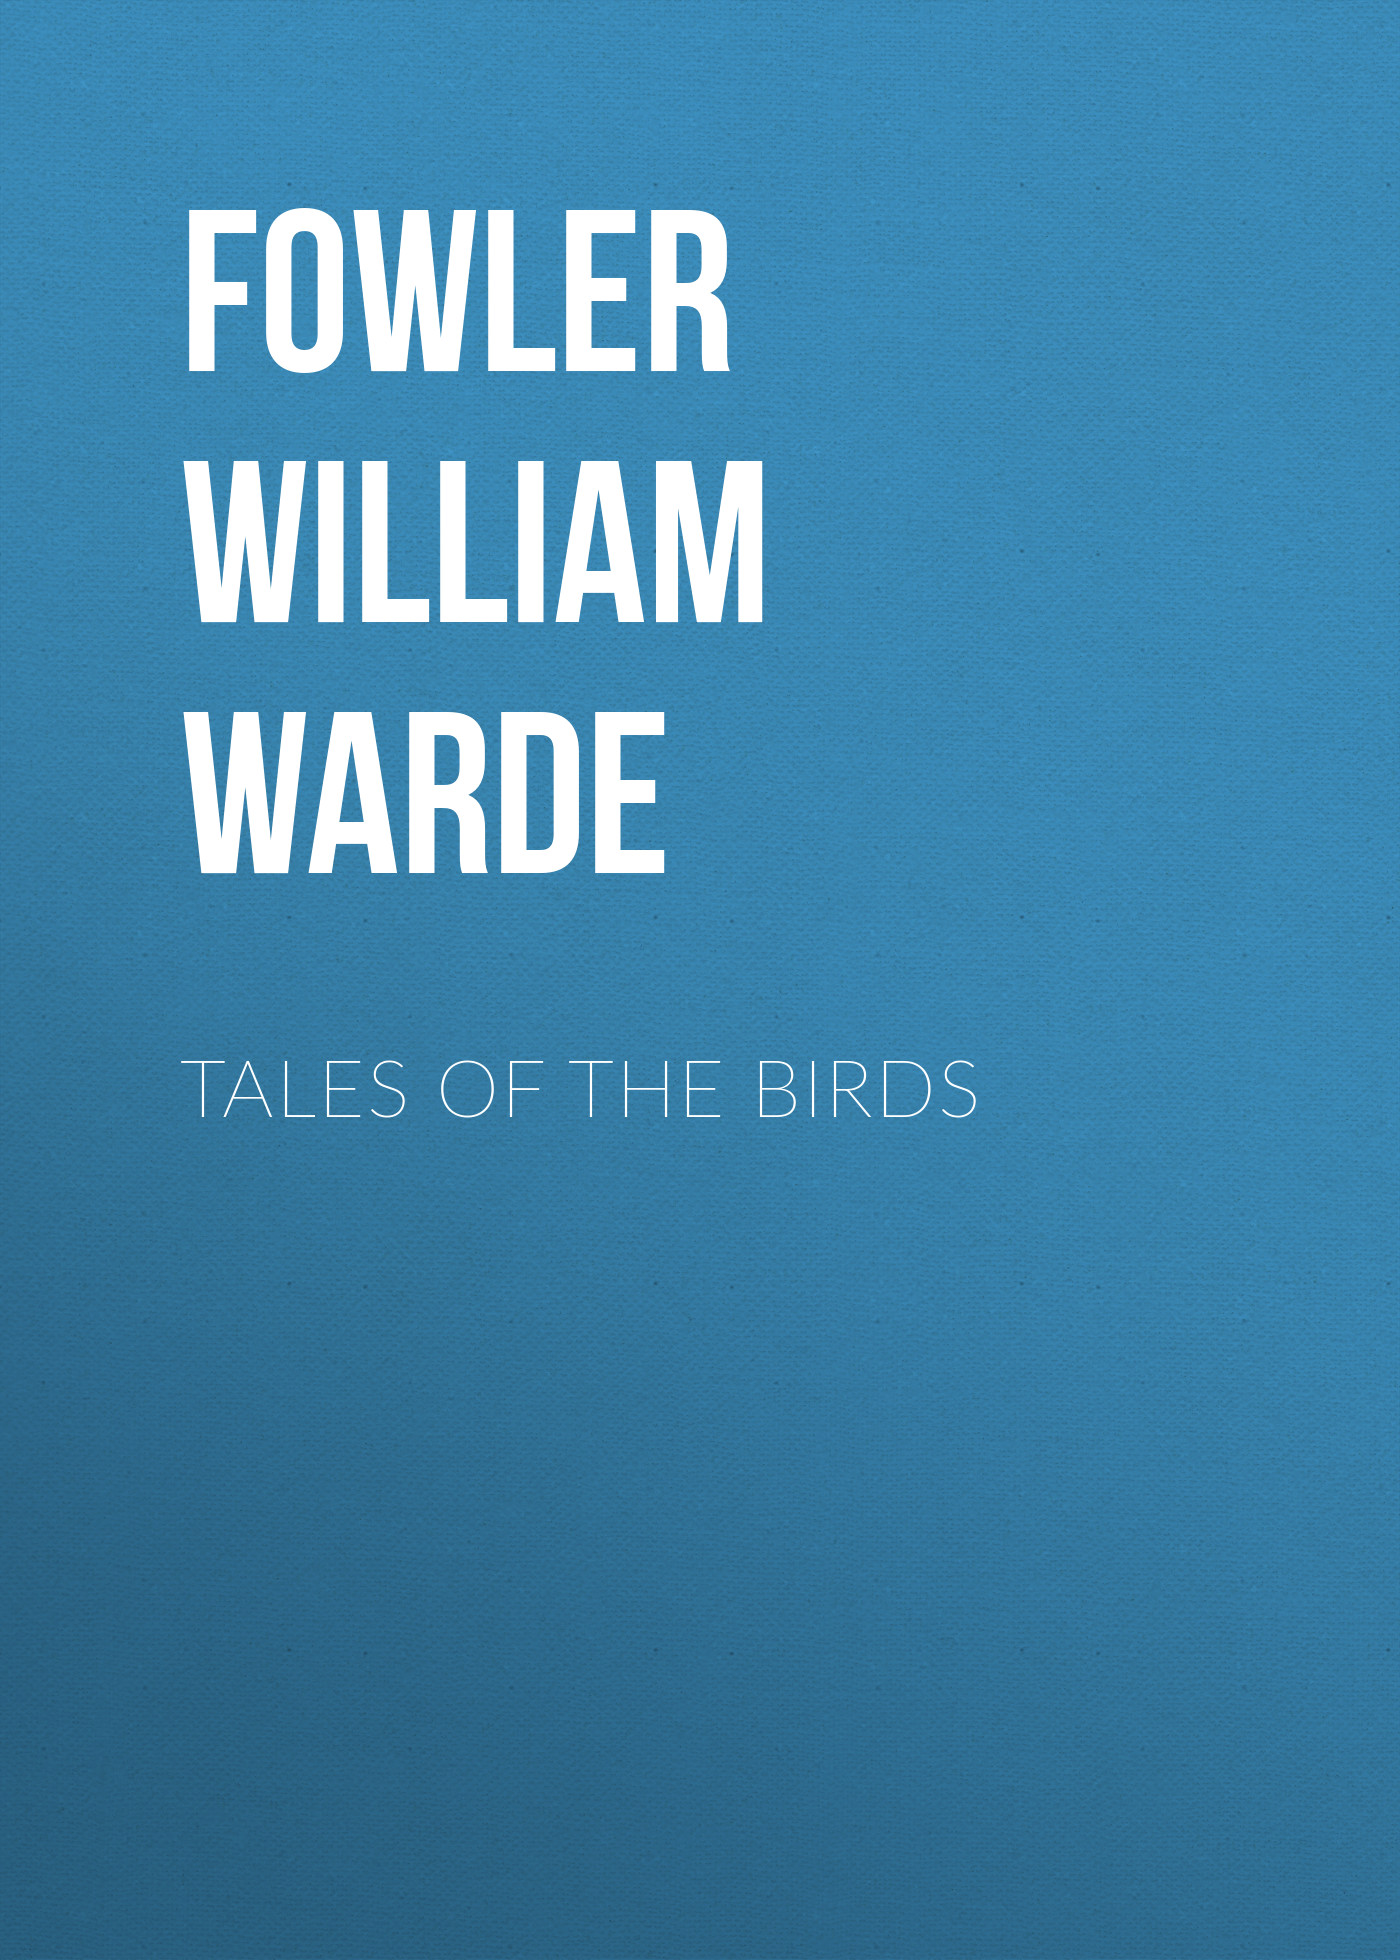 Фото - Fowler William Warde Tales of the birds lld william chauncey fowler local law in massachusetts and connecticut historically considered